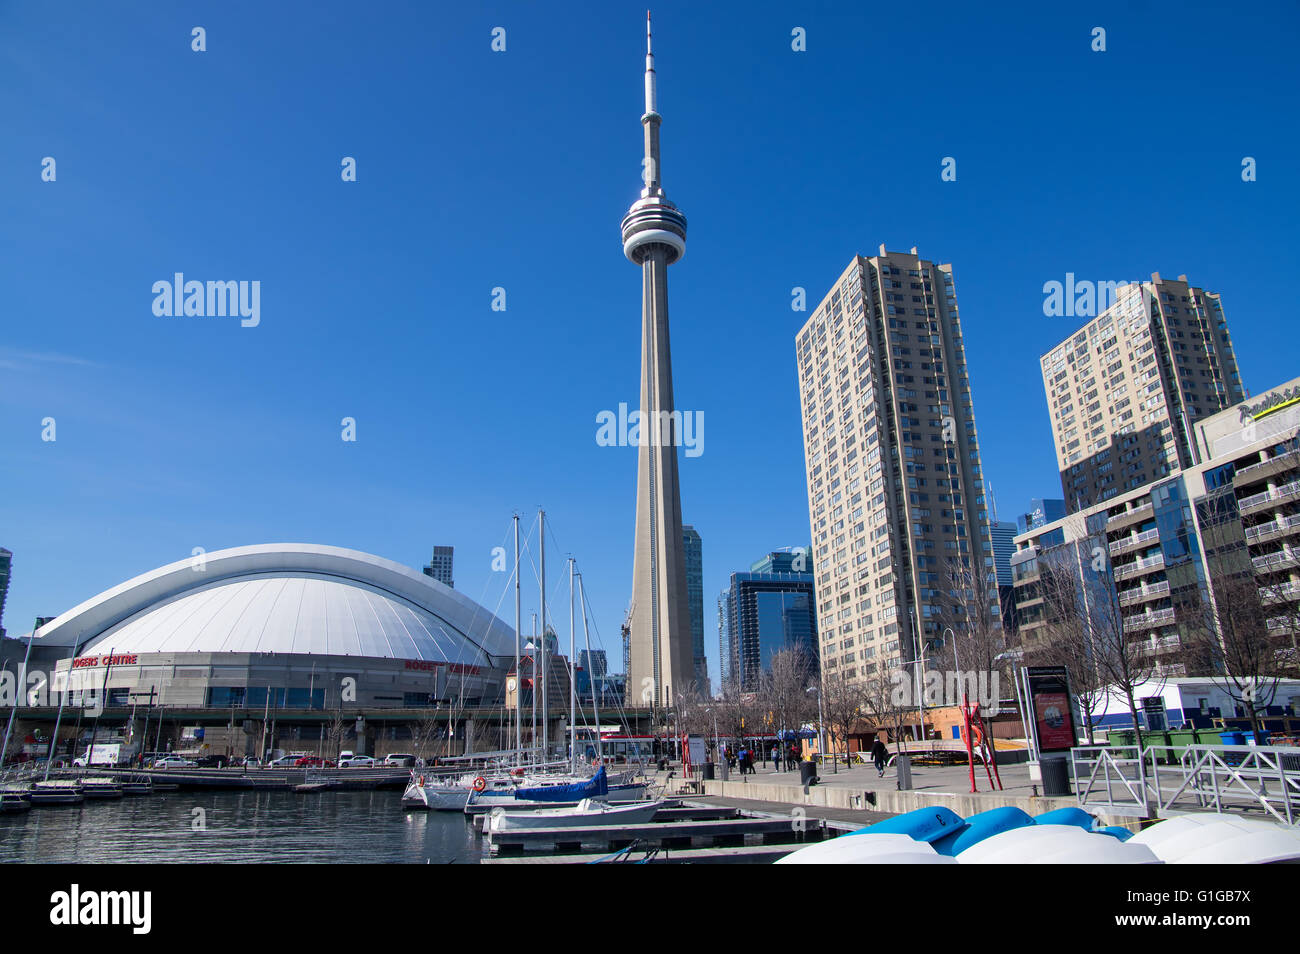 Toronto CN tower and  Rogers Center (SkyDome) view from Harbourfront - Stock Image